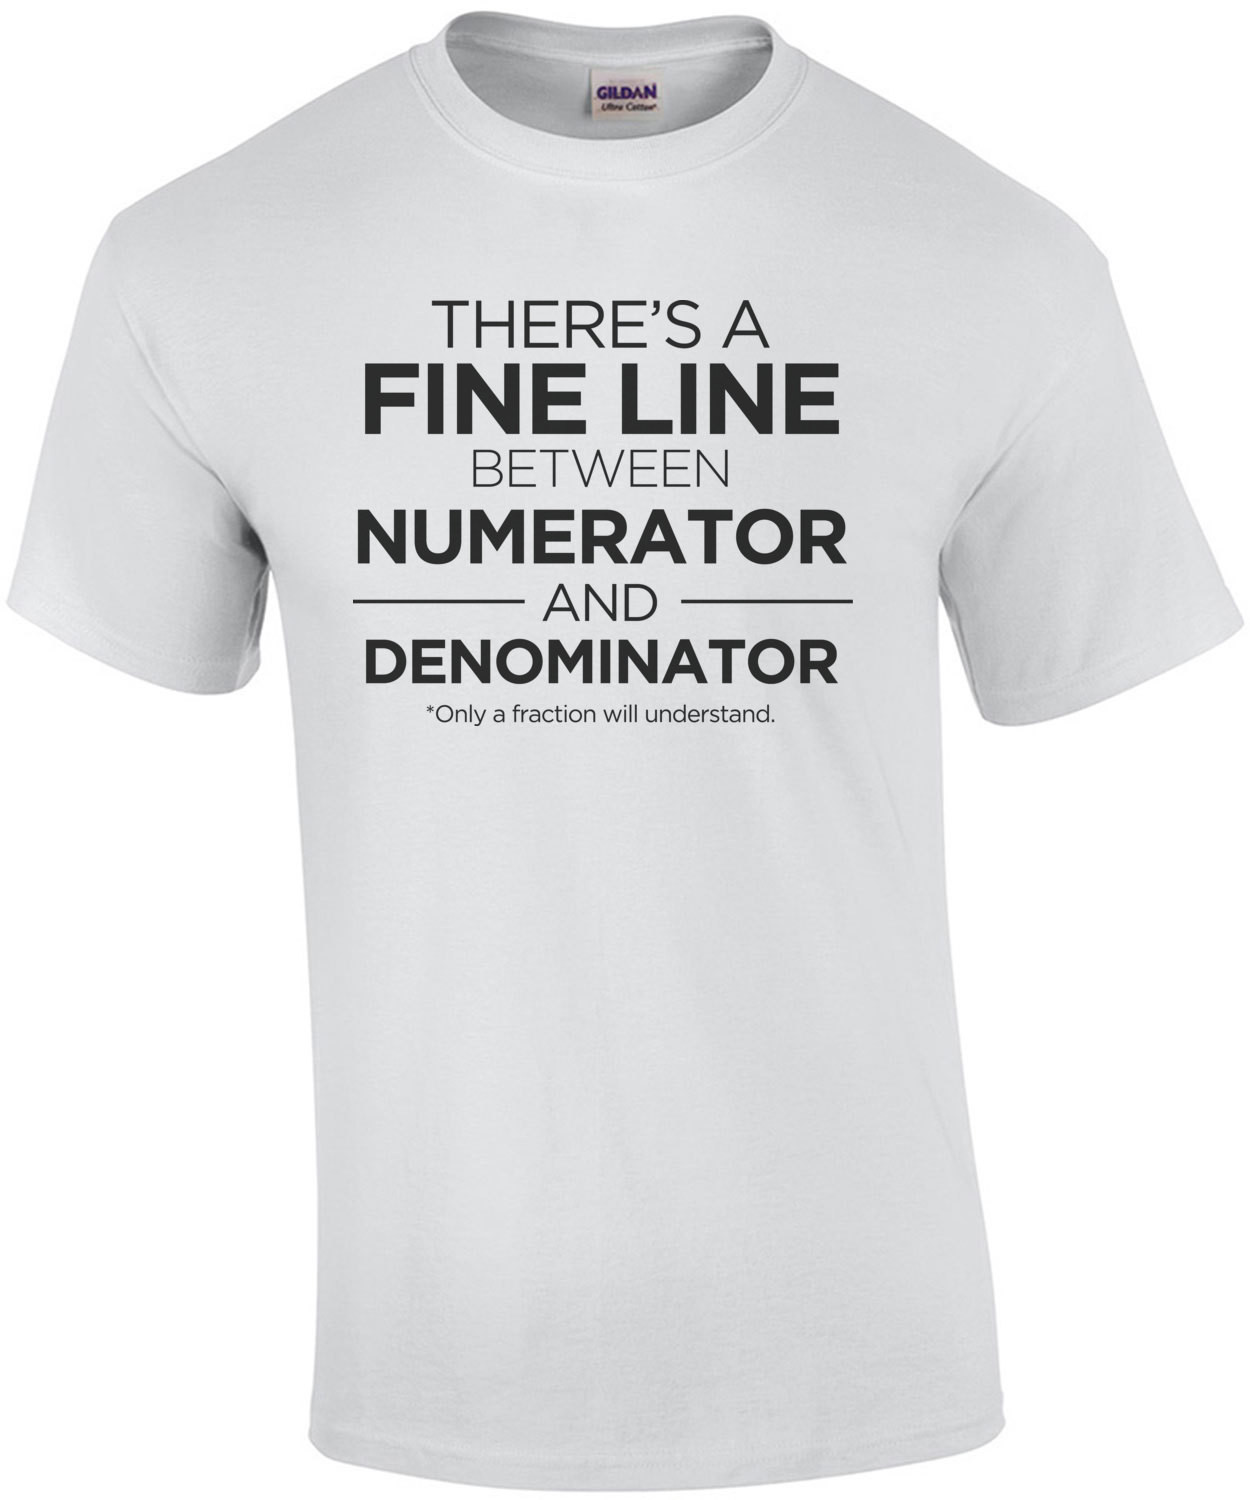 There's a fine line between numerator and denominator - funny math t-shirt